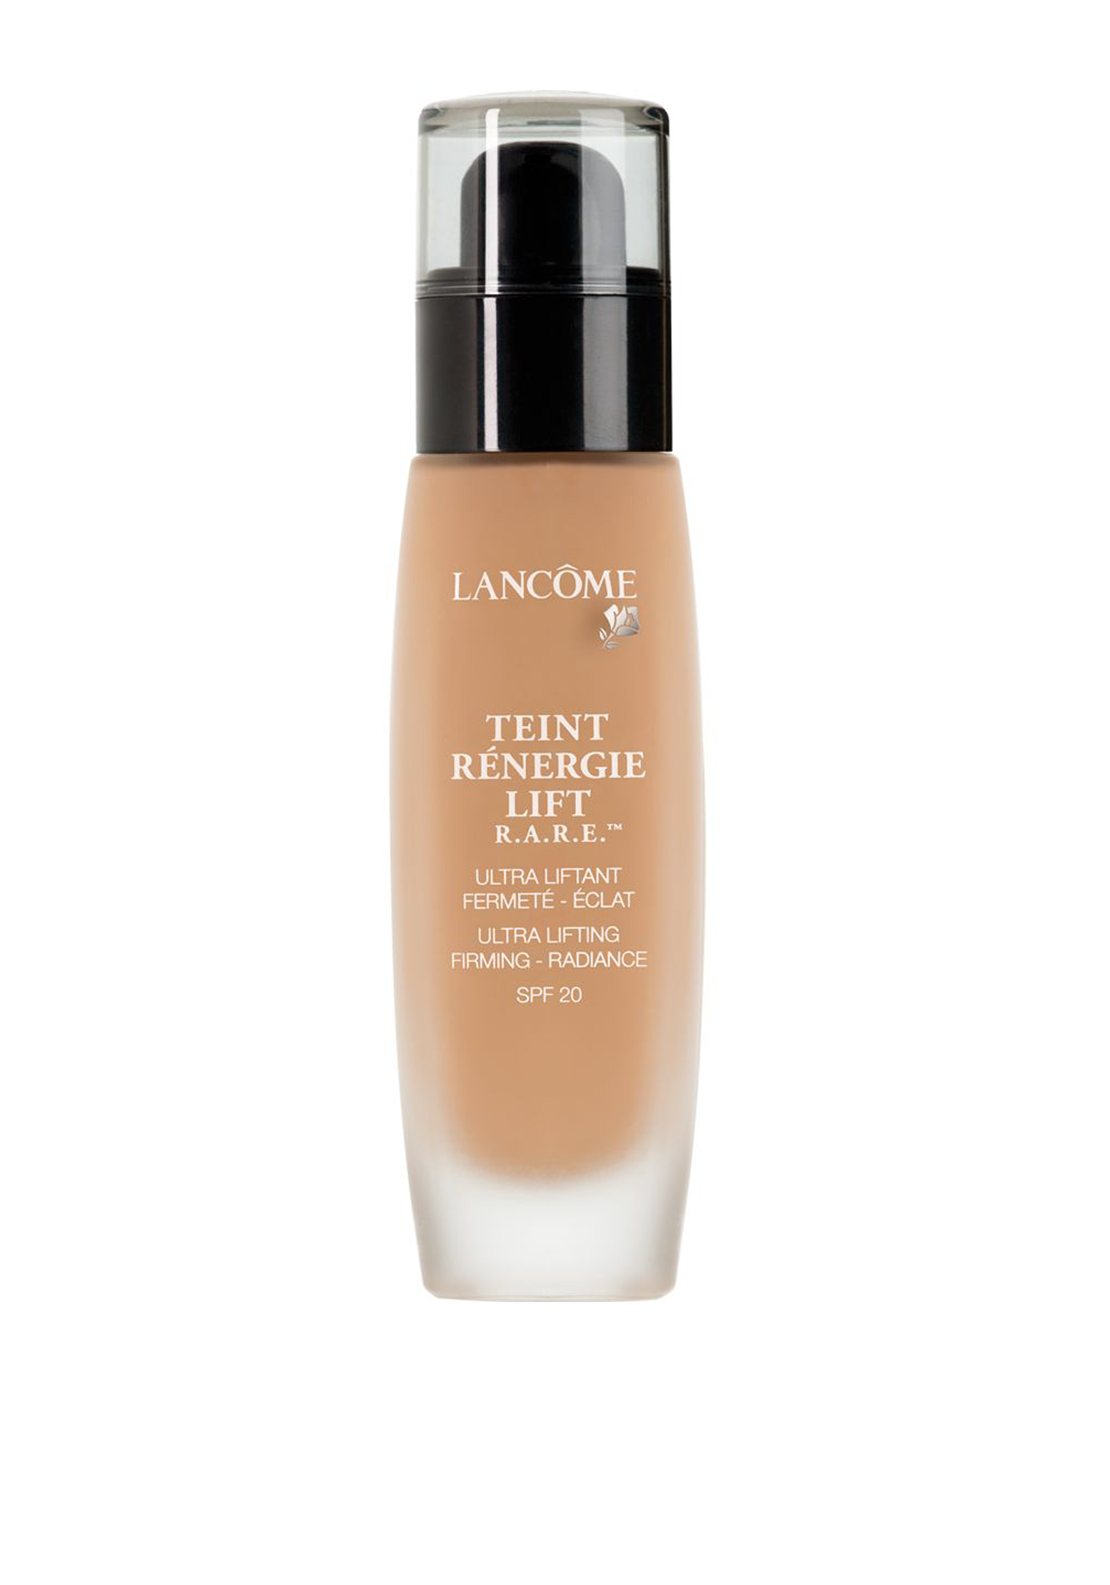 Lancome Teint Renergie Lift R.A.R.E Liquid Foundation with SPF20, 05 Beige